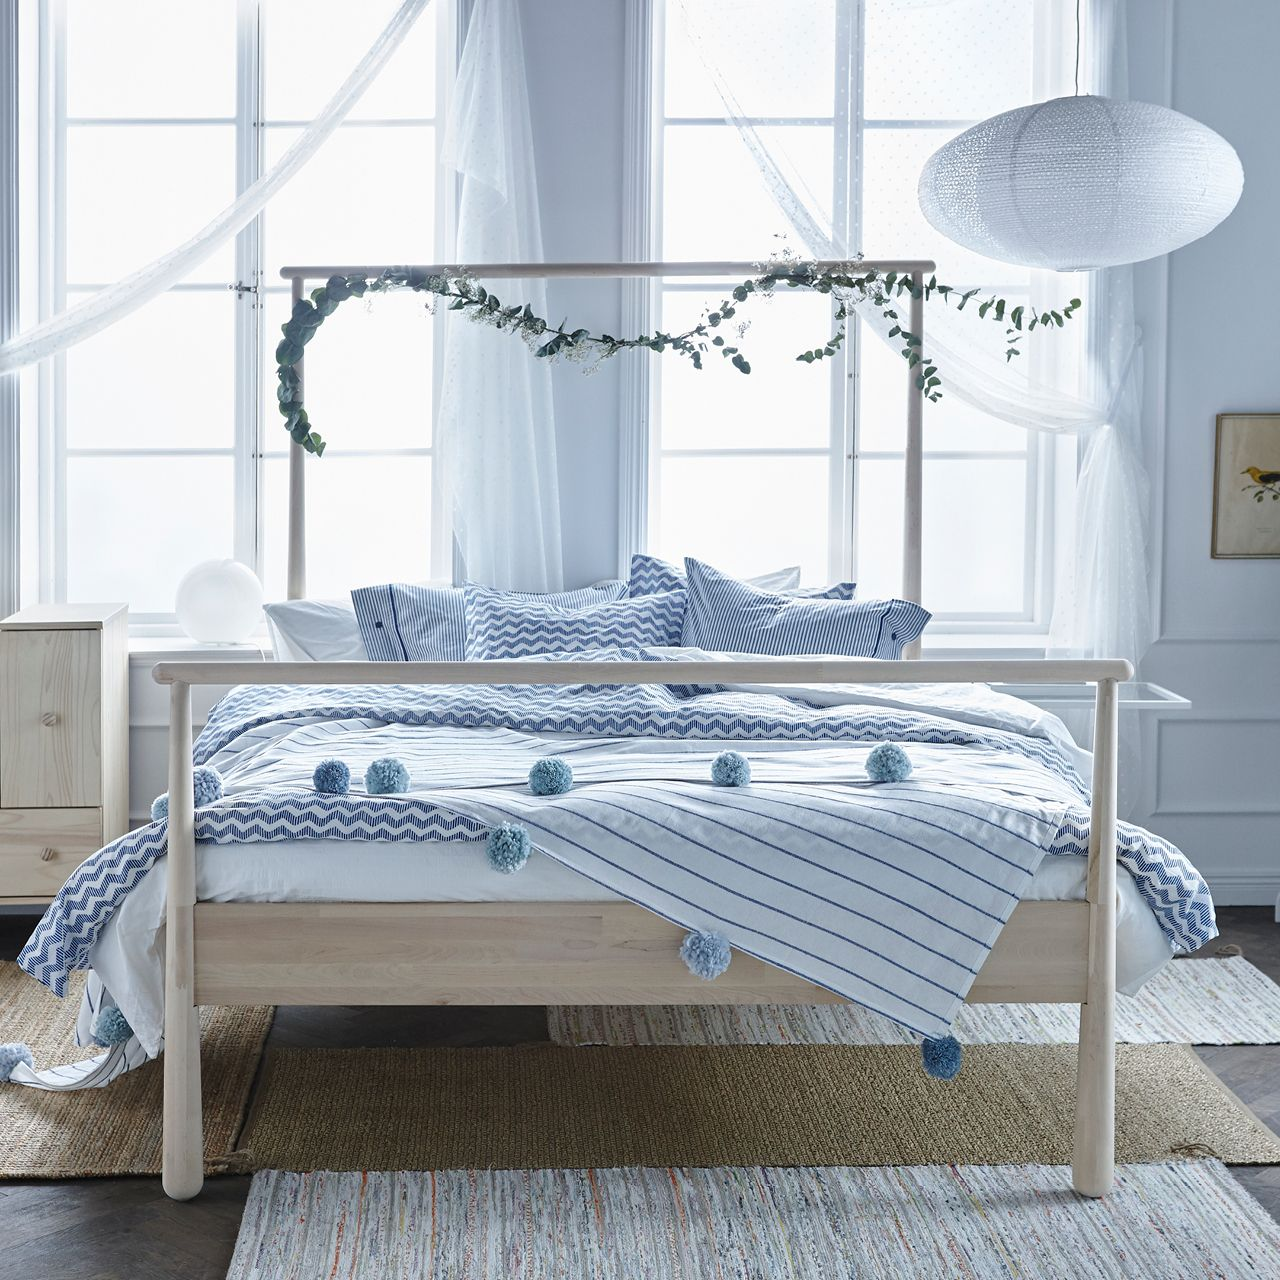 Bedroom Inspiration Ikea GjÖra Bed Frame Birch Lönset Bedrooms Bed Frames And Room